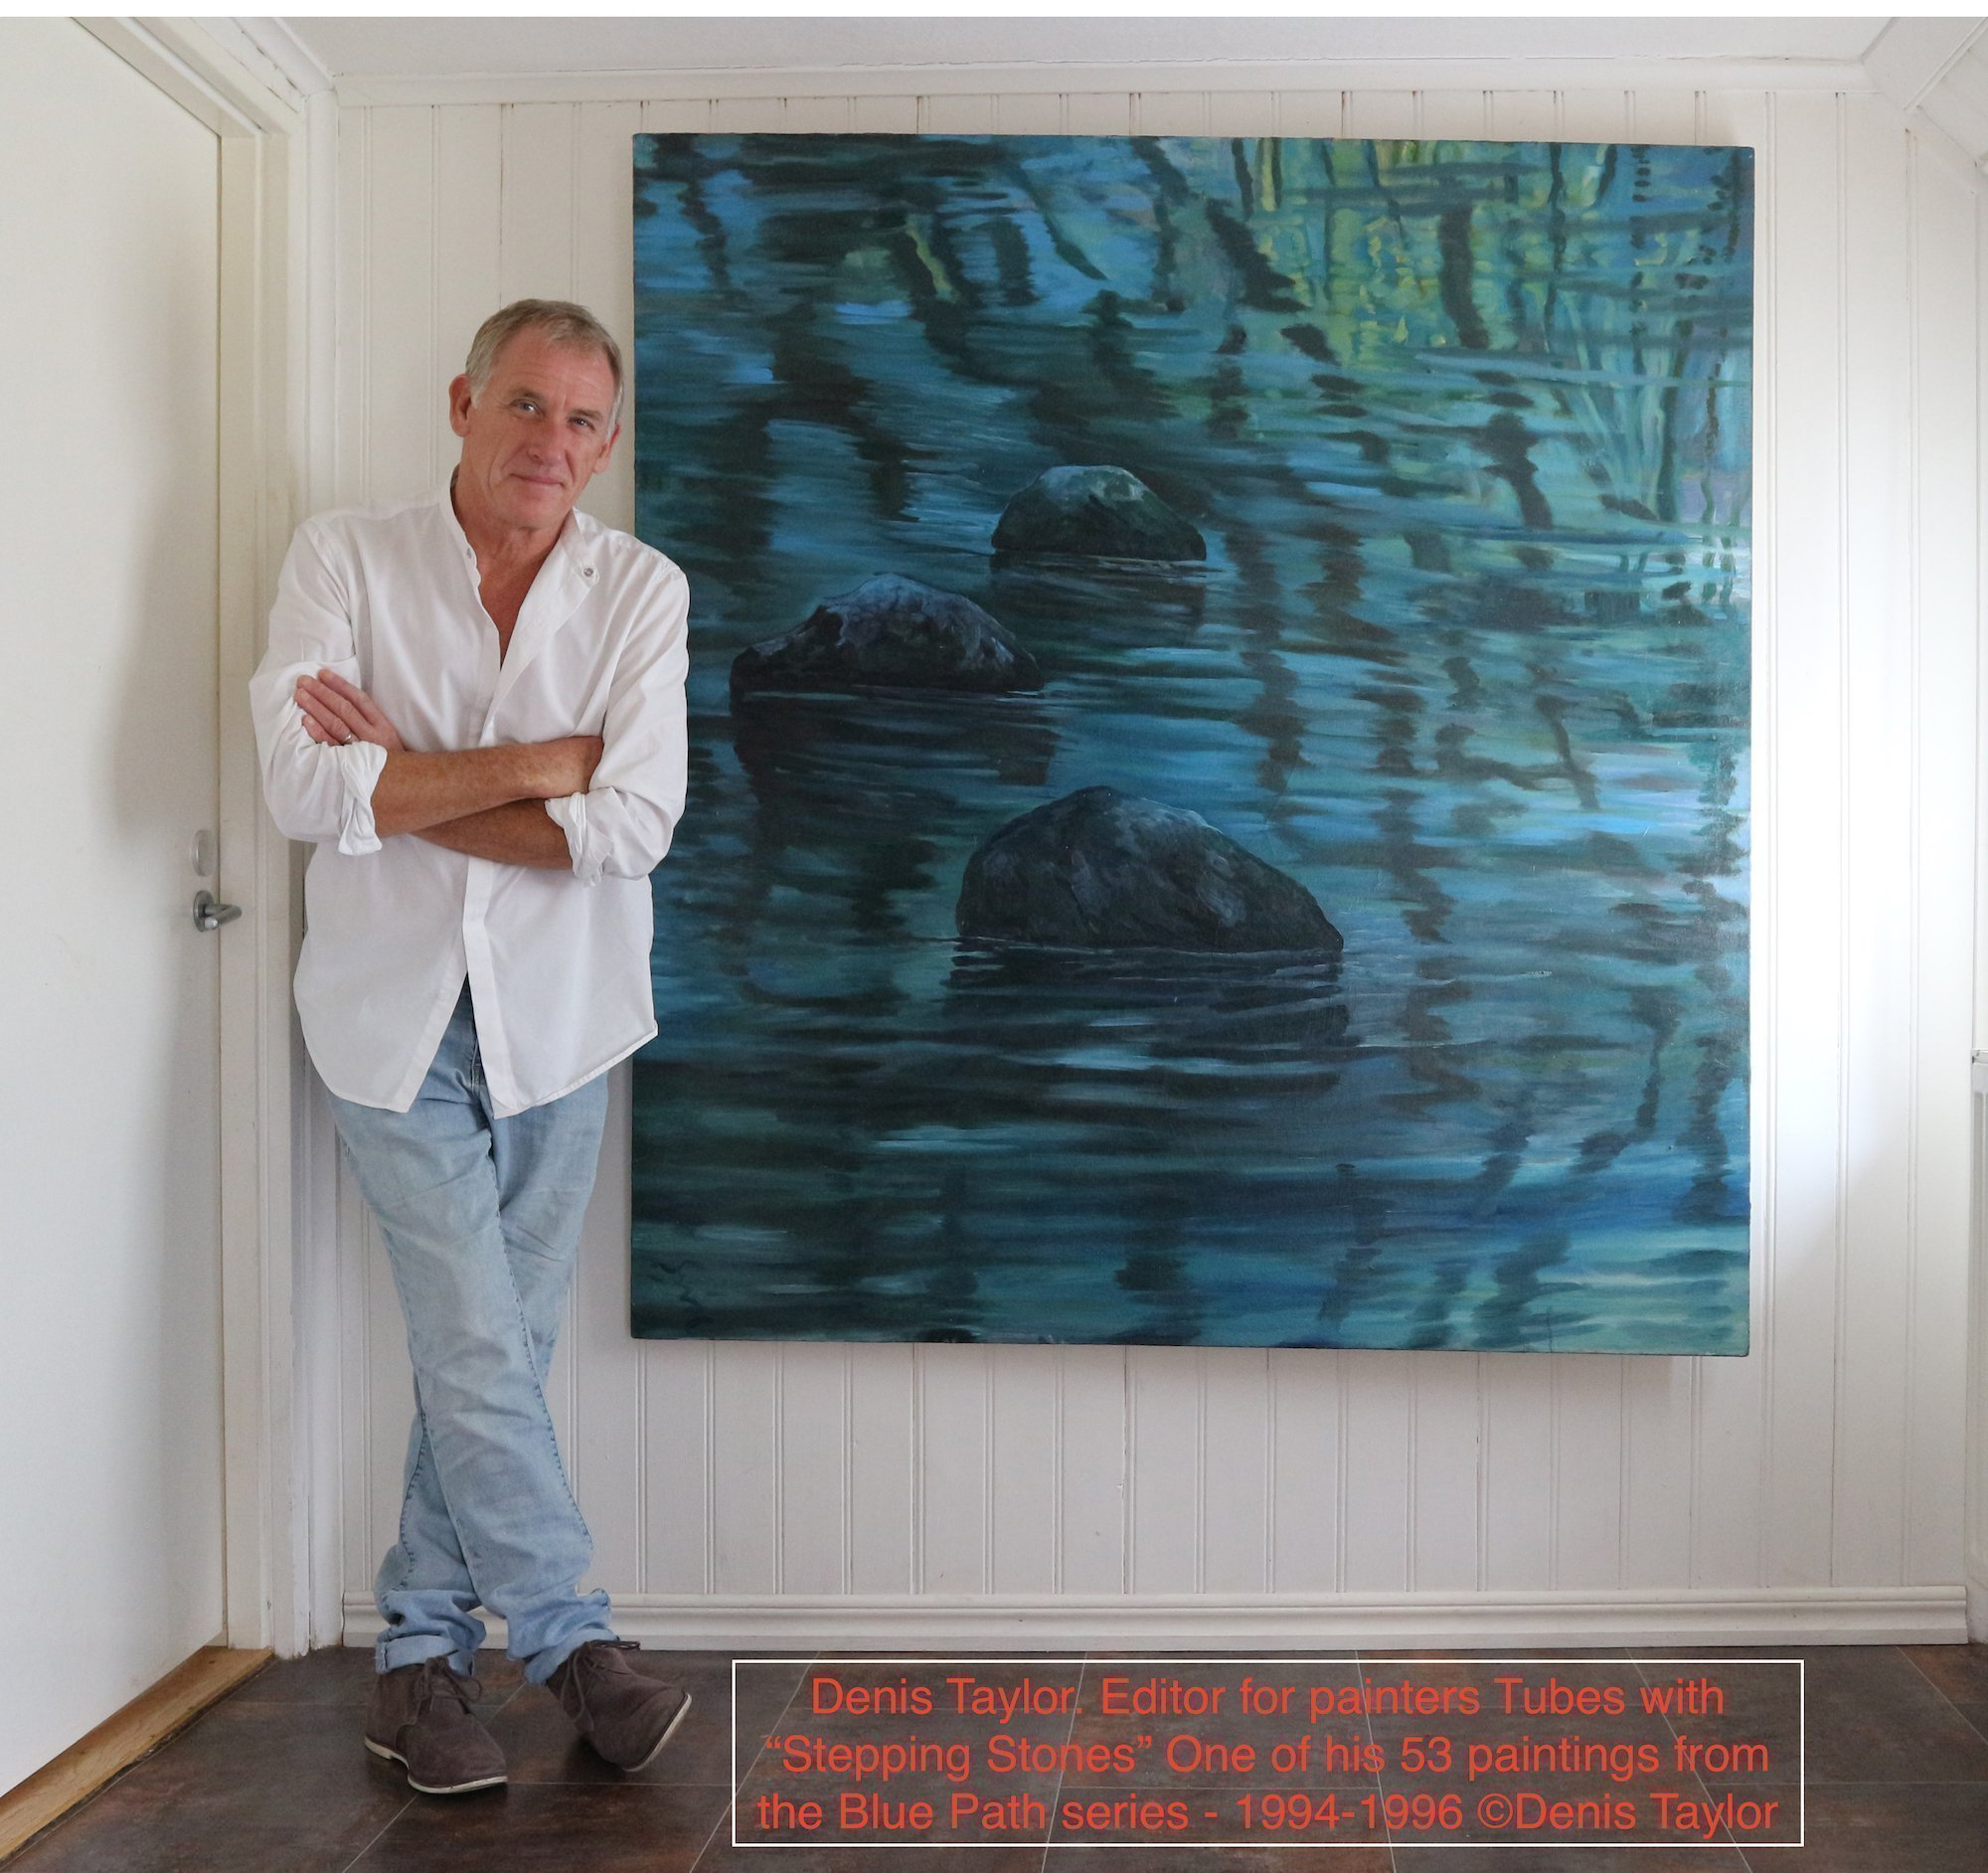 Denis Taylor artists and Editor of painters Tubes magazine